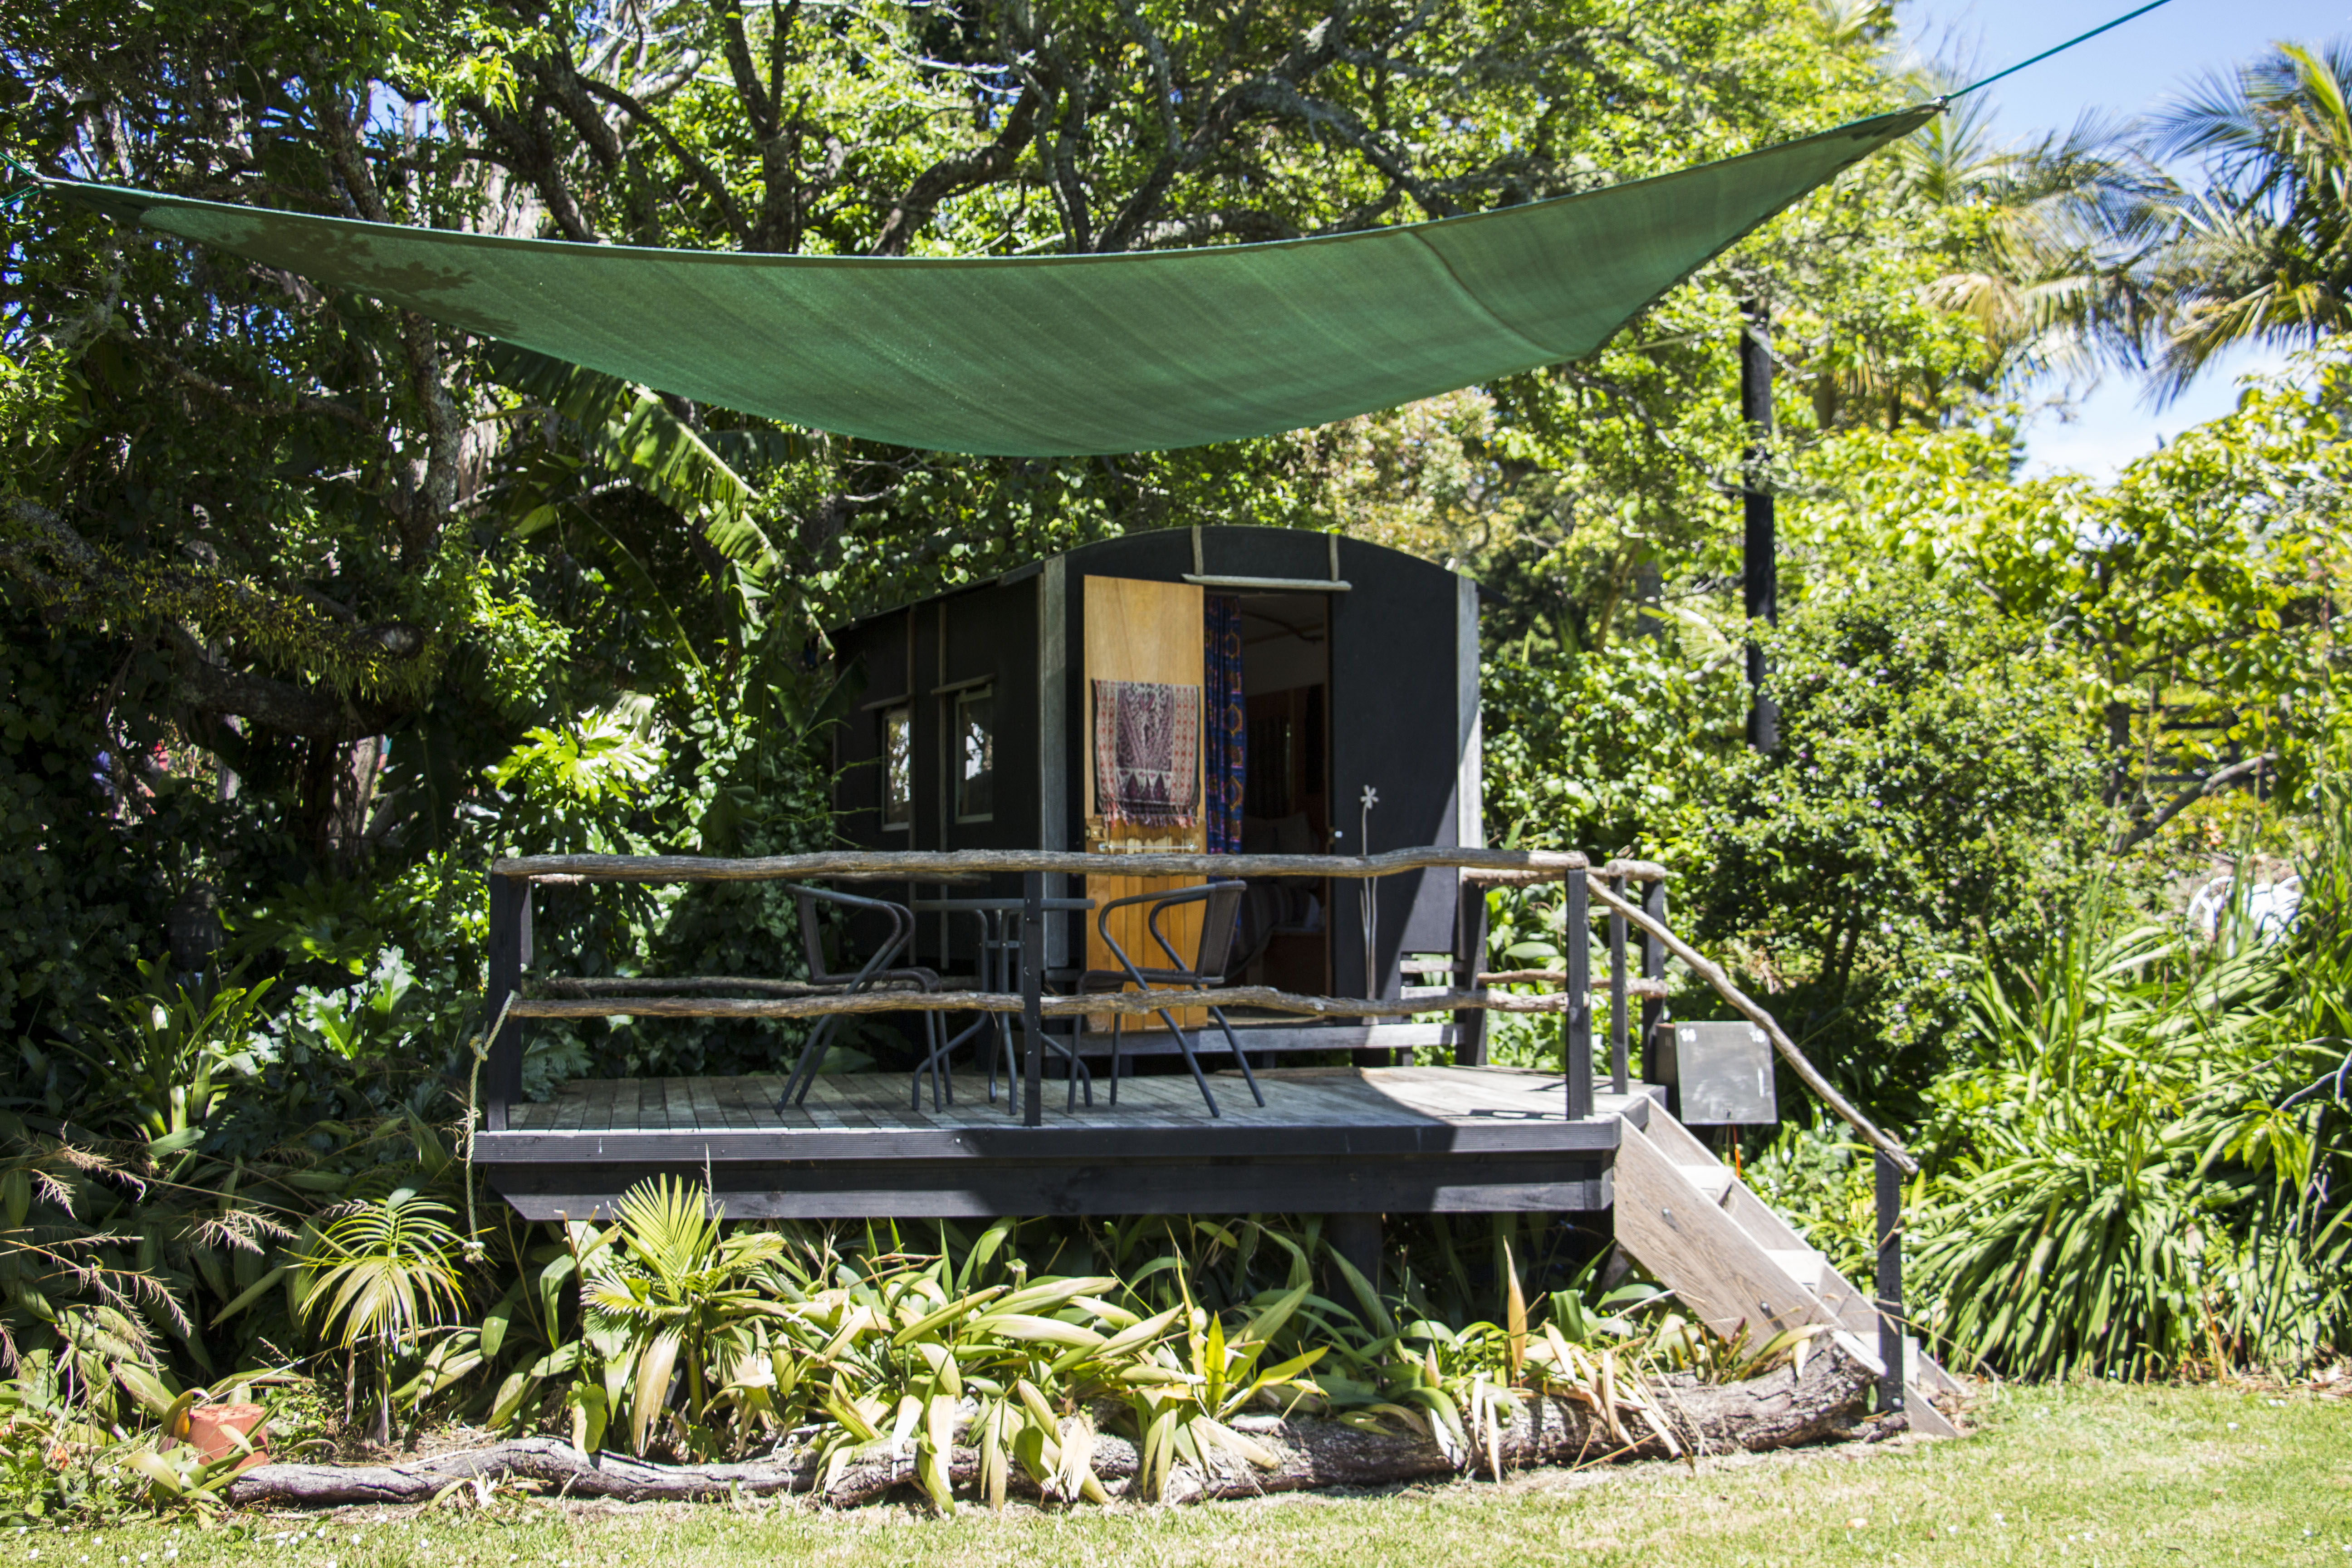 romantic glamping getaways for couples from 80 per night. Black Bedroom Furniture Sets. Home Design Ideas